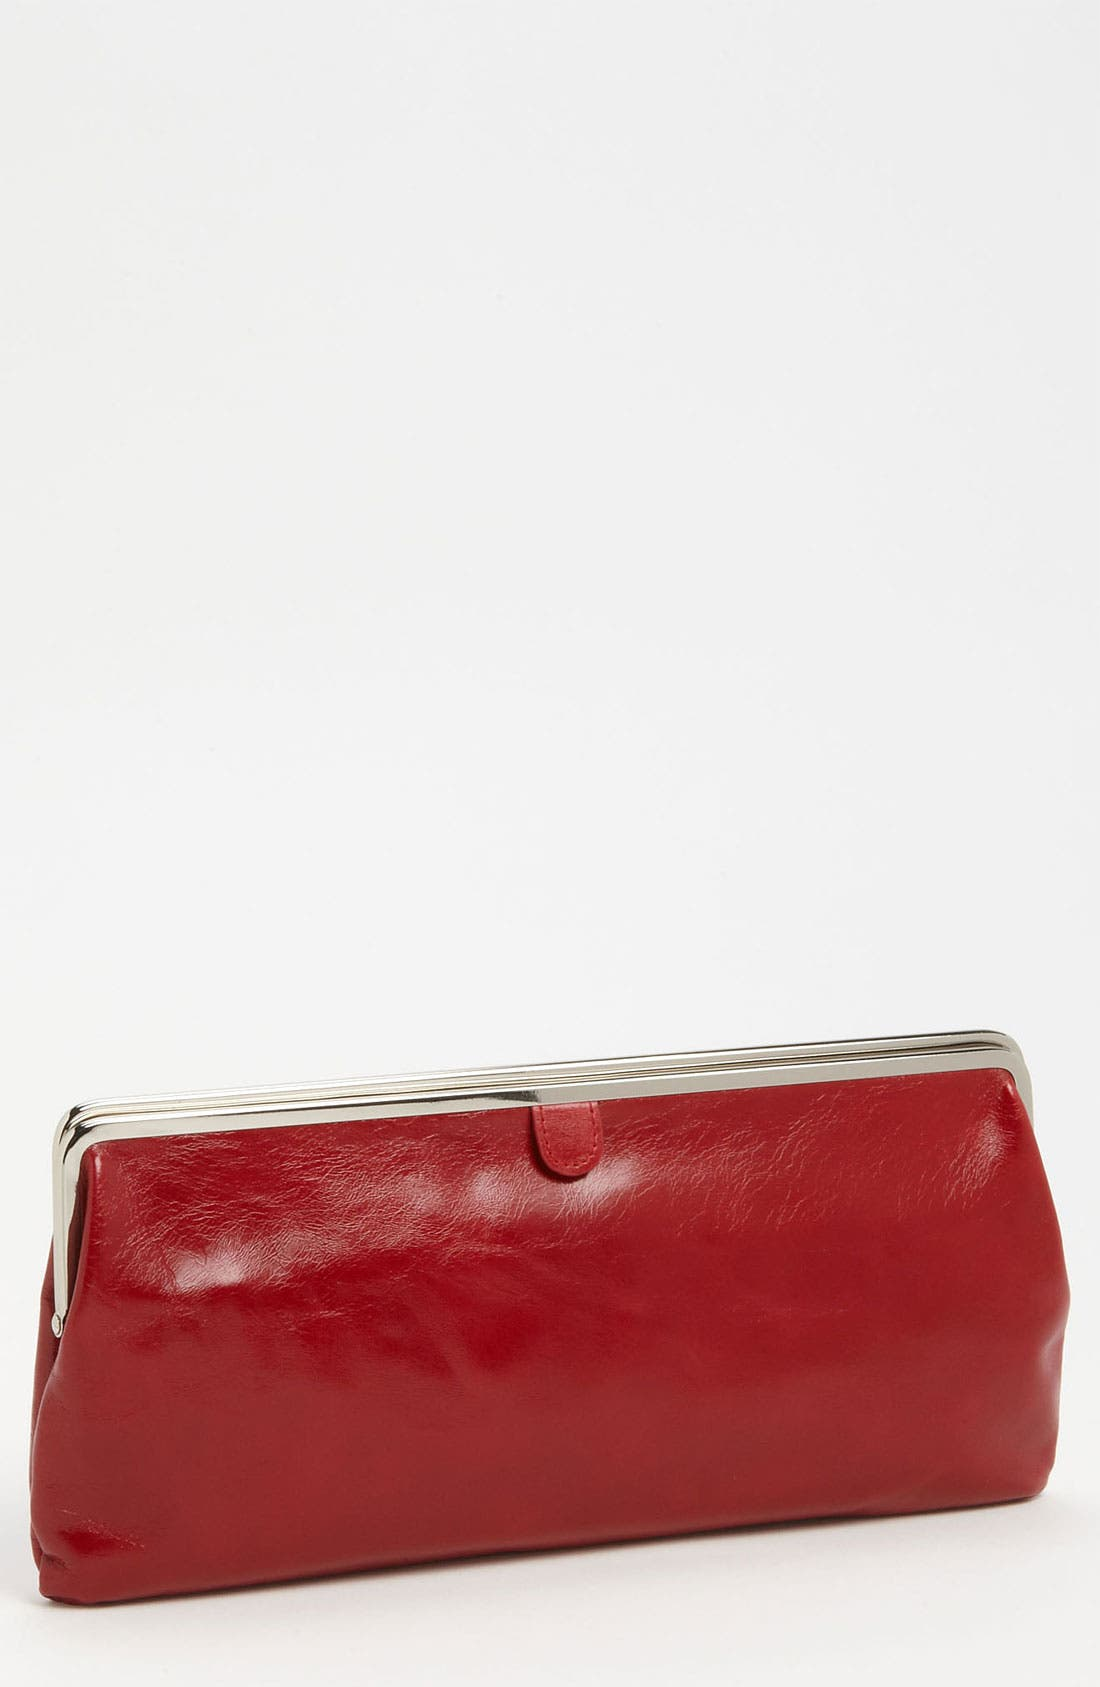 Alternate Image 1 Selected - Hobo 'Deanna' Clutch